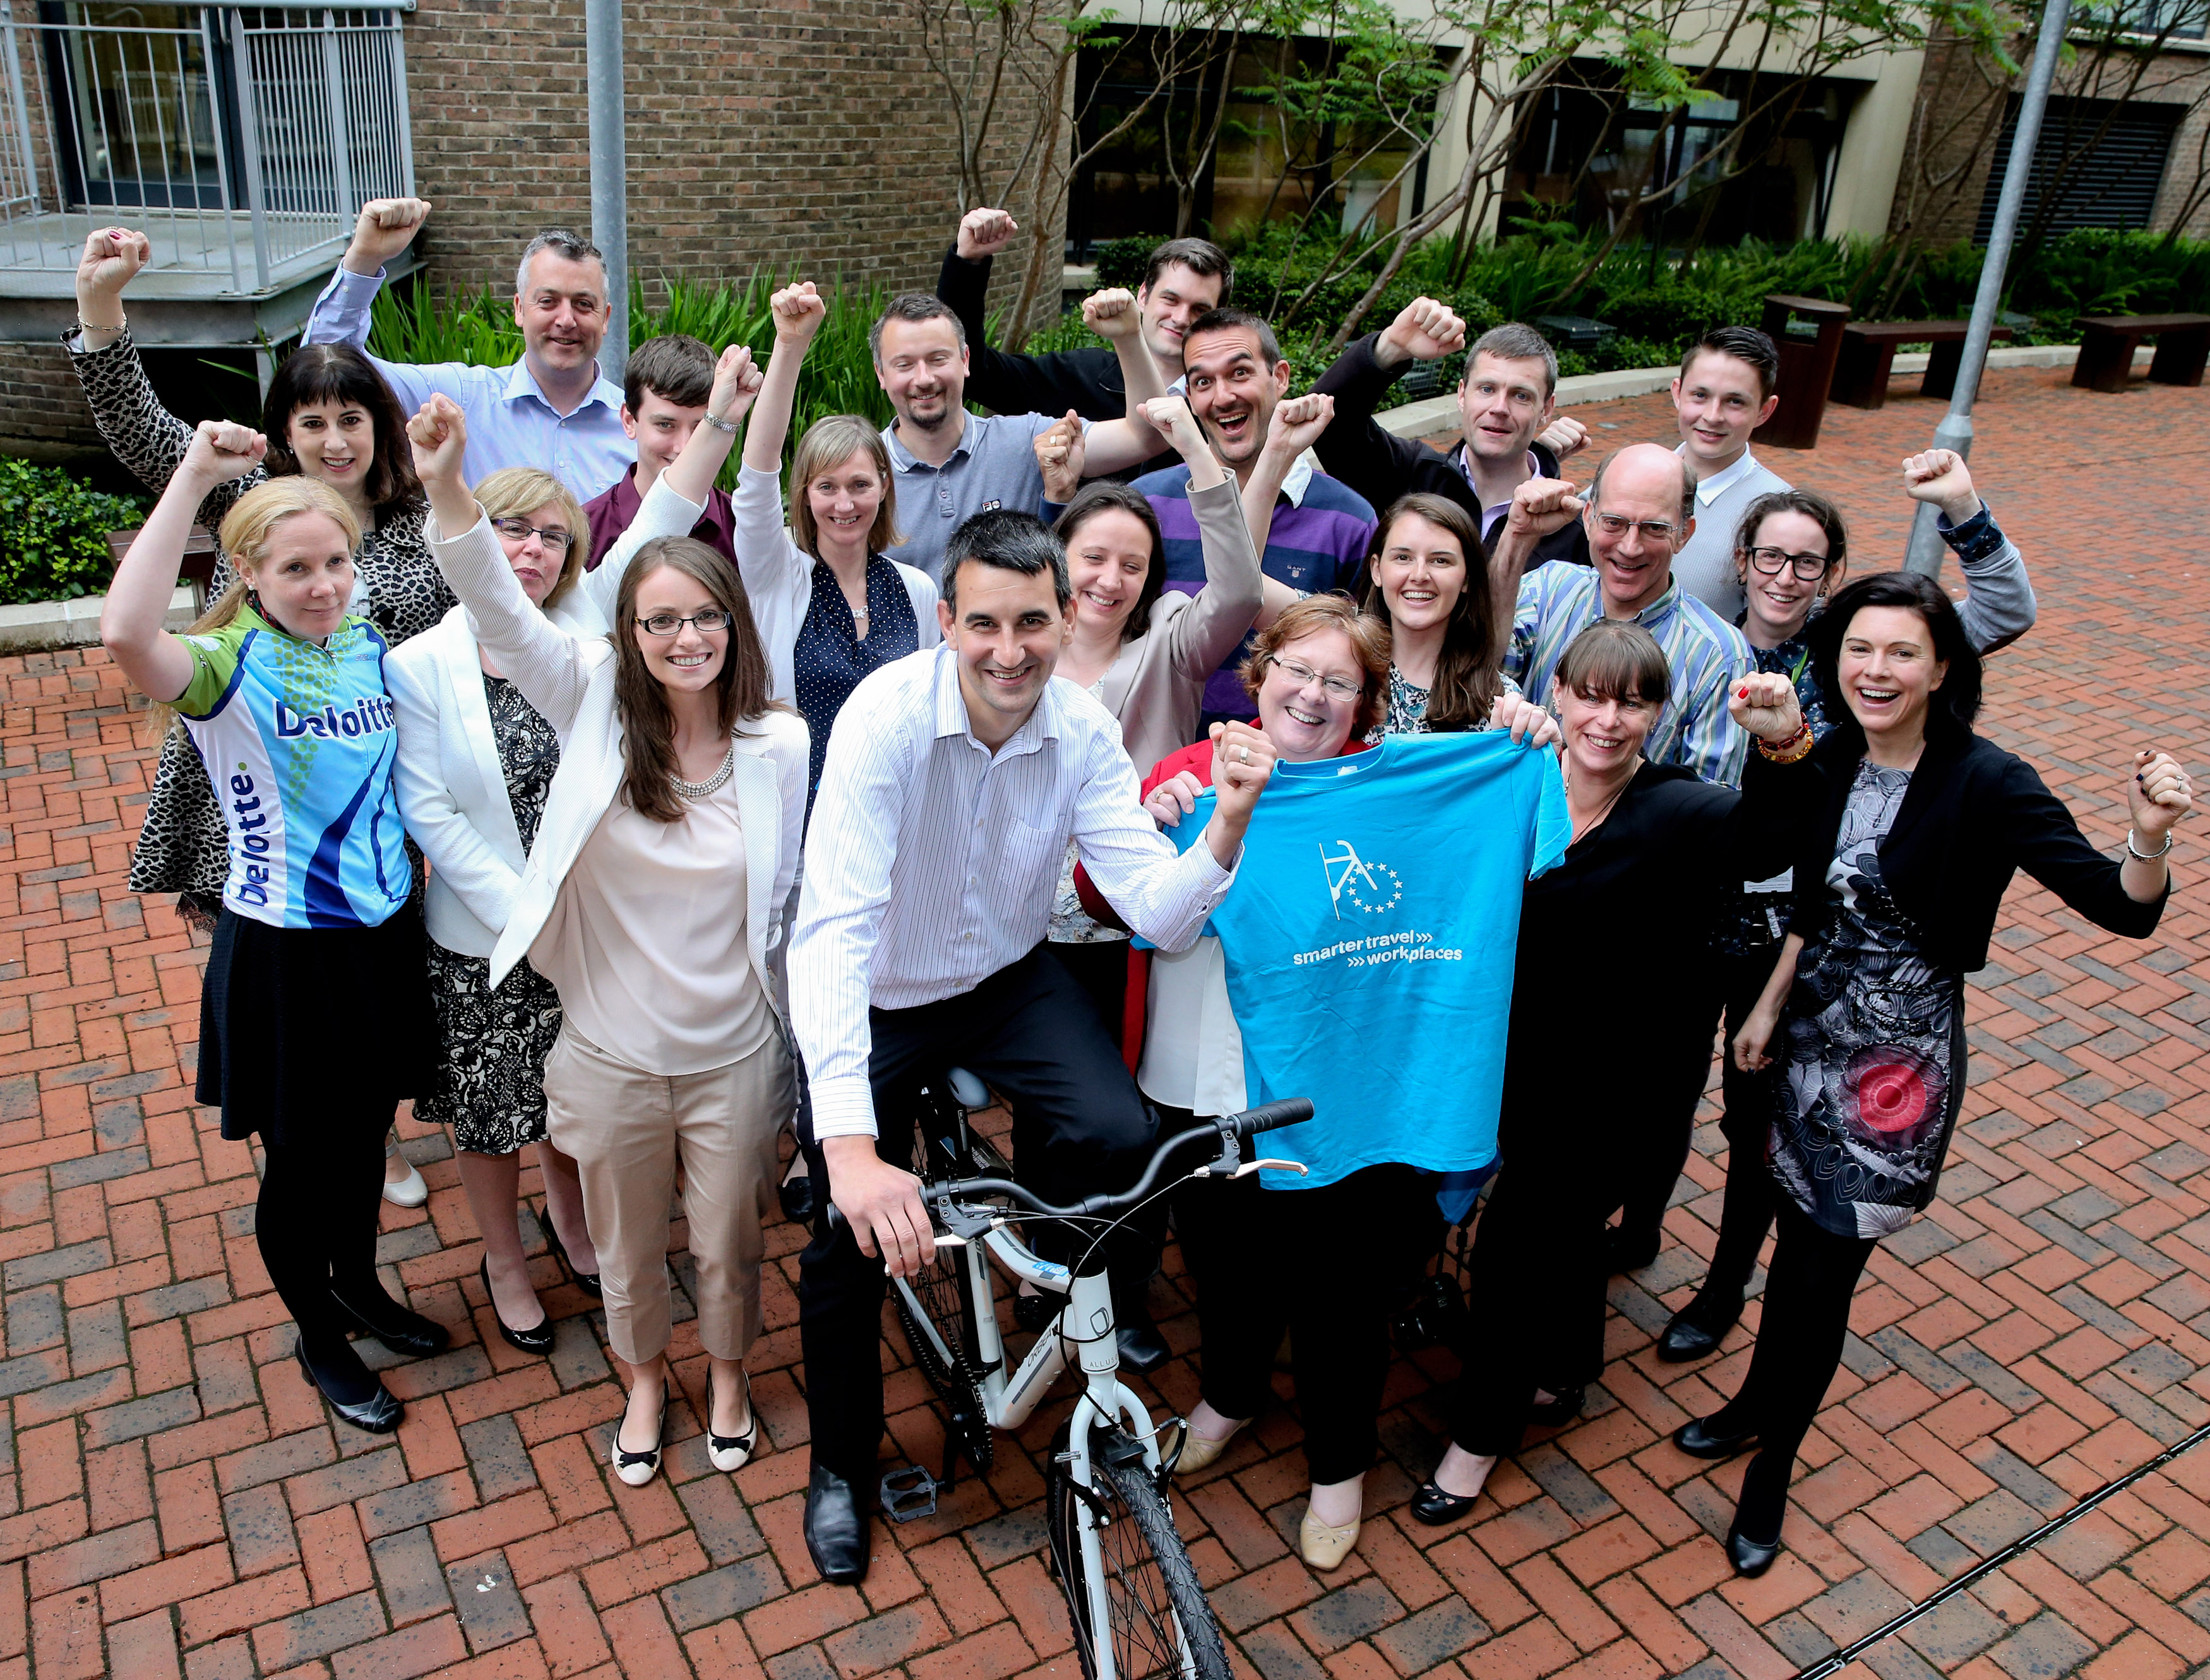 Lucky for some! Dublin cyclists come 13th in the European Cycling Challenge